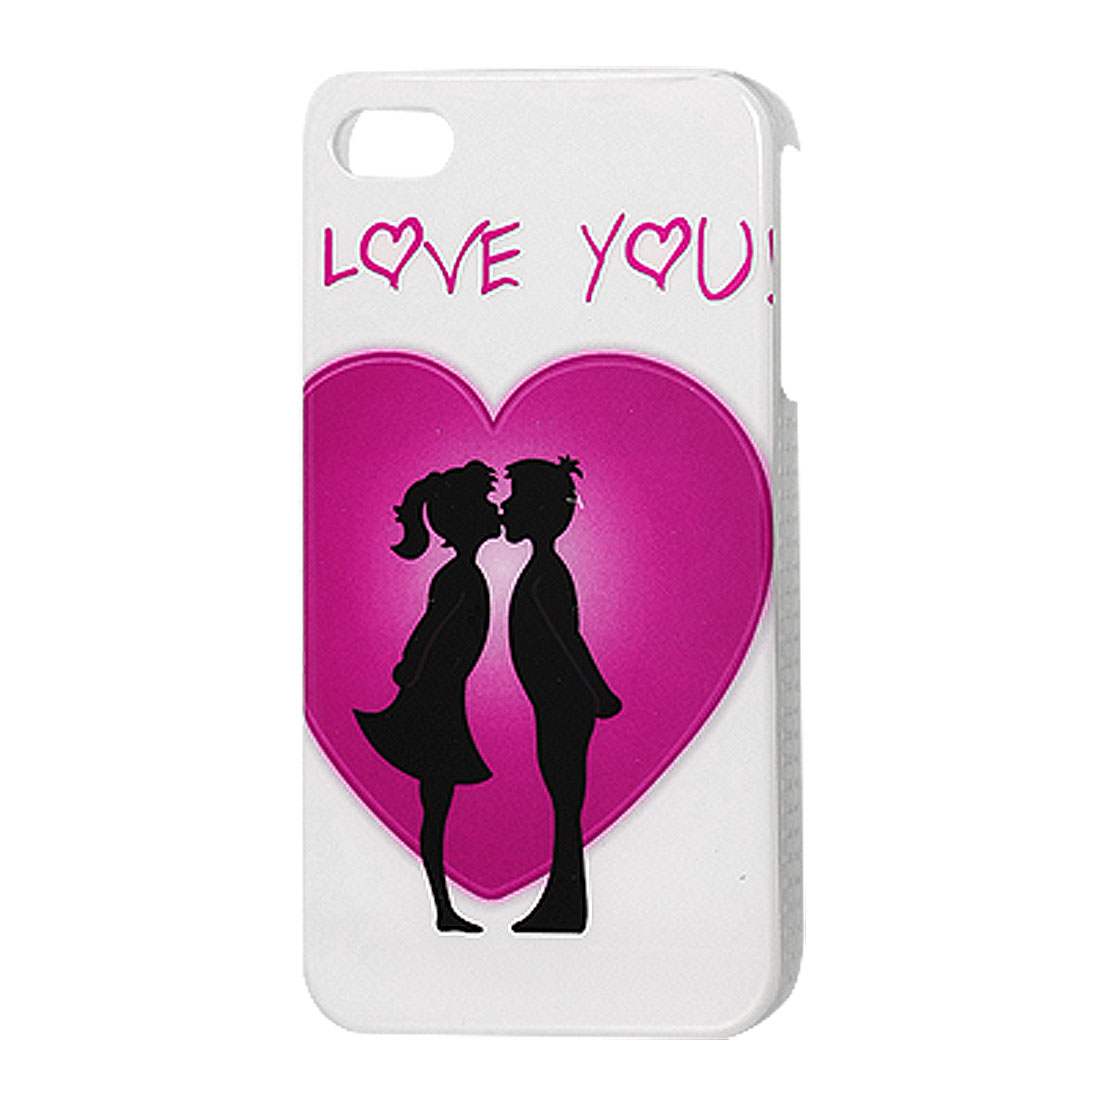 Kissing Lovers Pattern White Hard Plastic IMD Back Case for iPhone 4 4G 4S